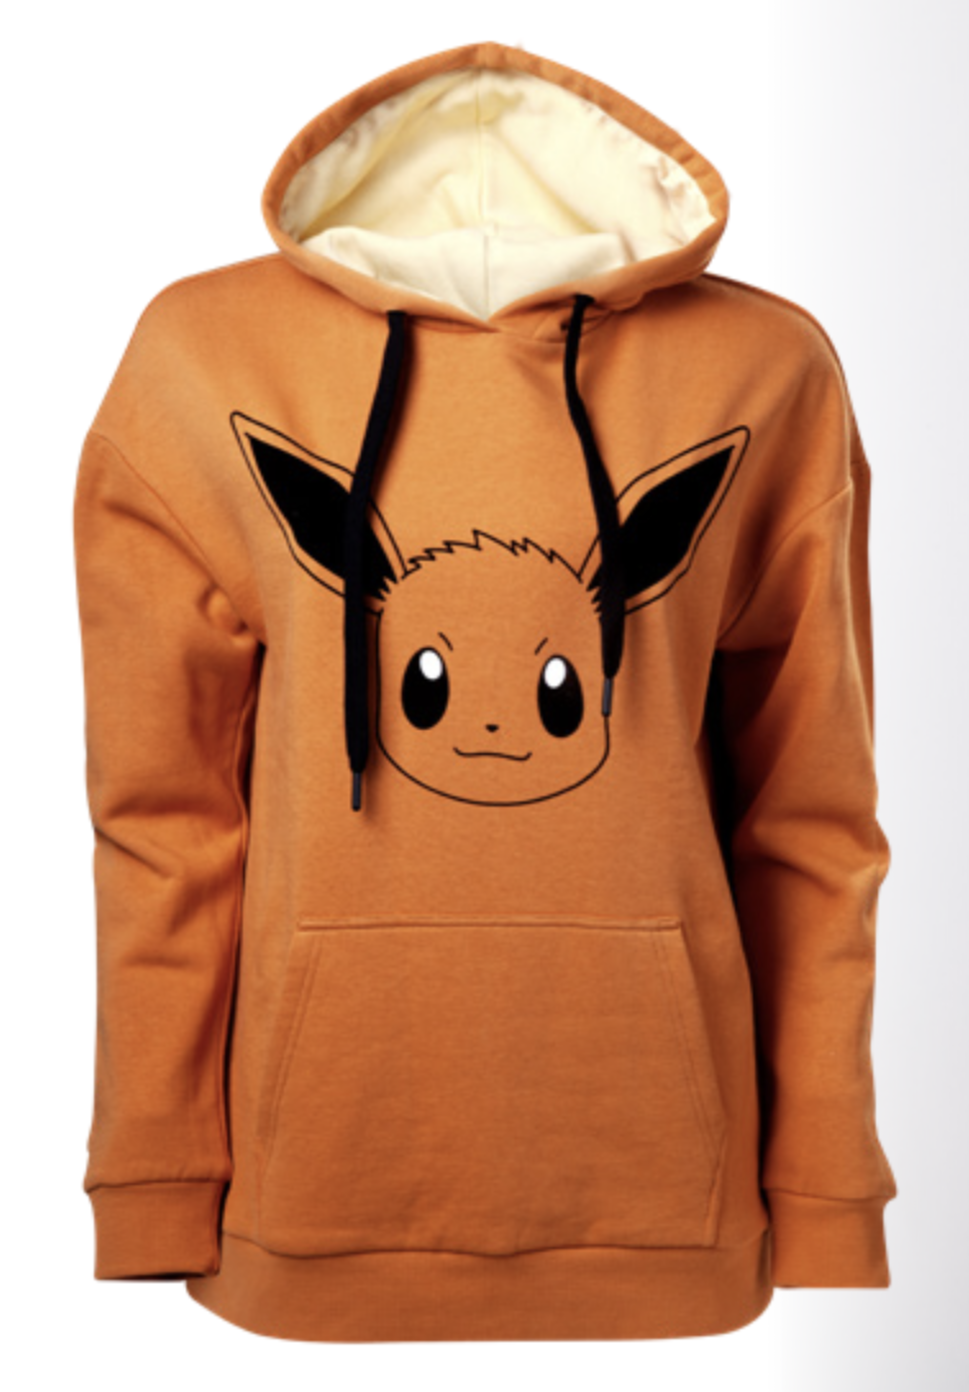 POKEMON - Eevee Brushed Cotton Women's Sweater (S)